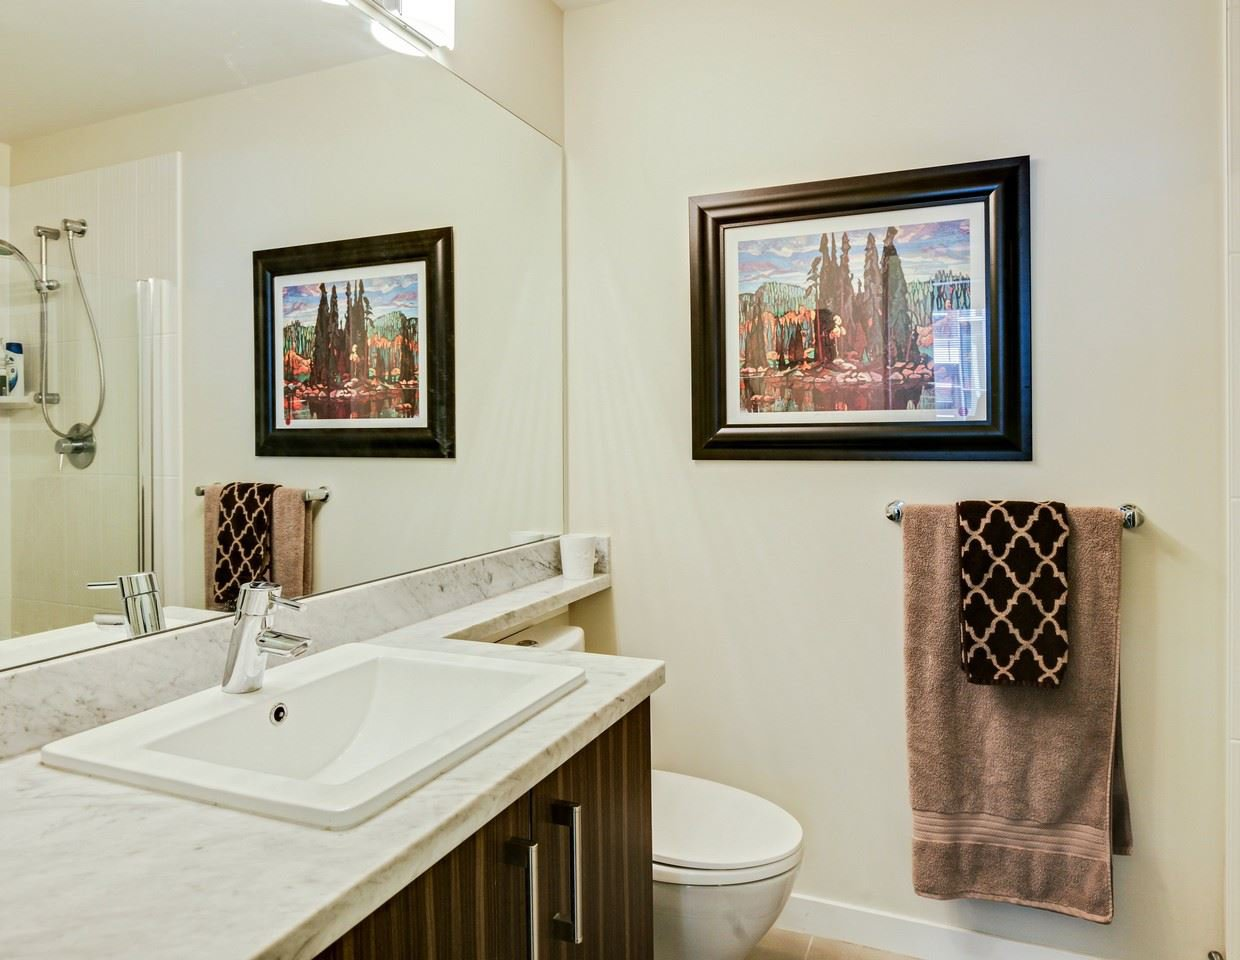 Photo 12: Photos: 319 119 W 22ND STREET in North Vancouver: Central Lonsdale Condo for sale : MLS®# R2047201